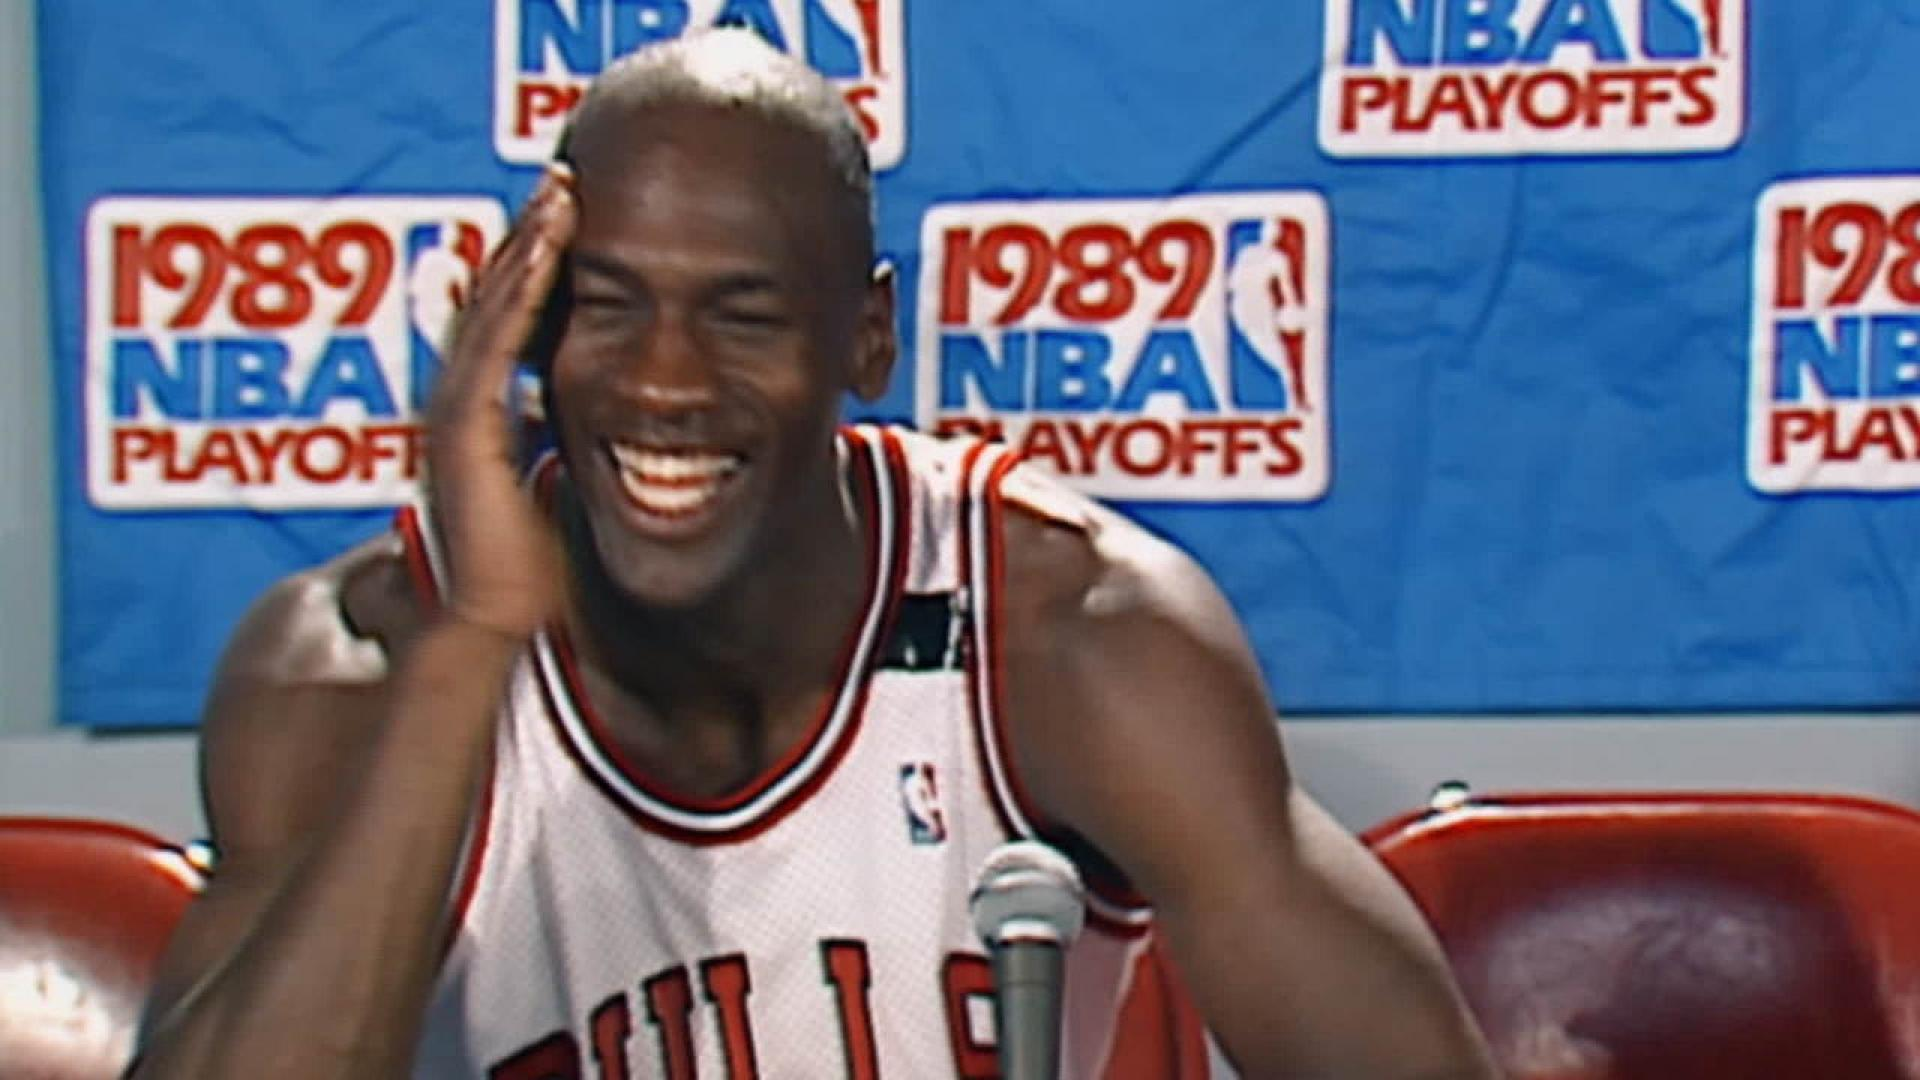 Legendary Moments In NBA History: Michael Jordan hits iconic shot to eliminate Cavaliers